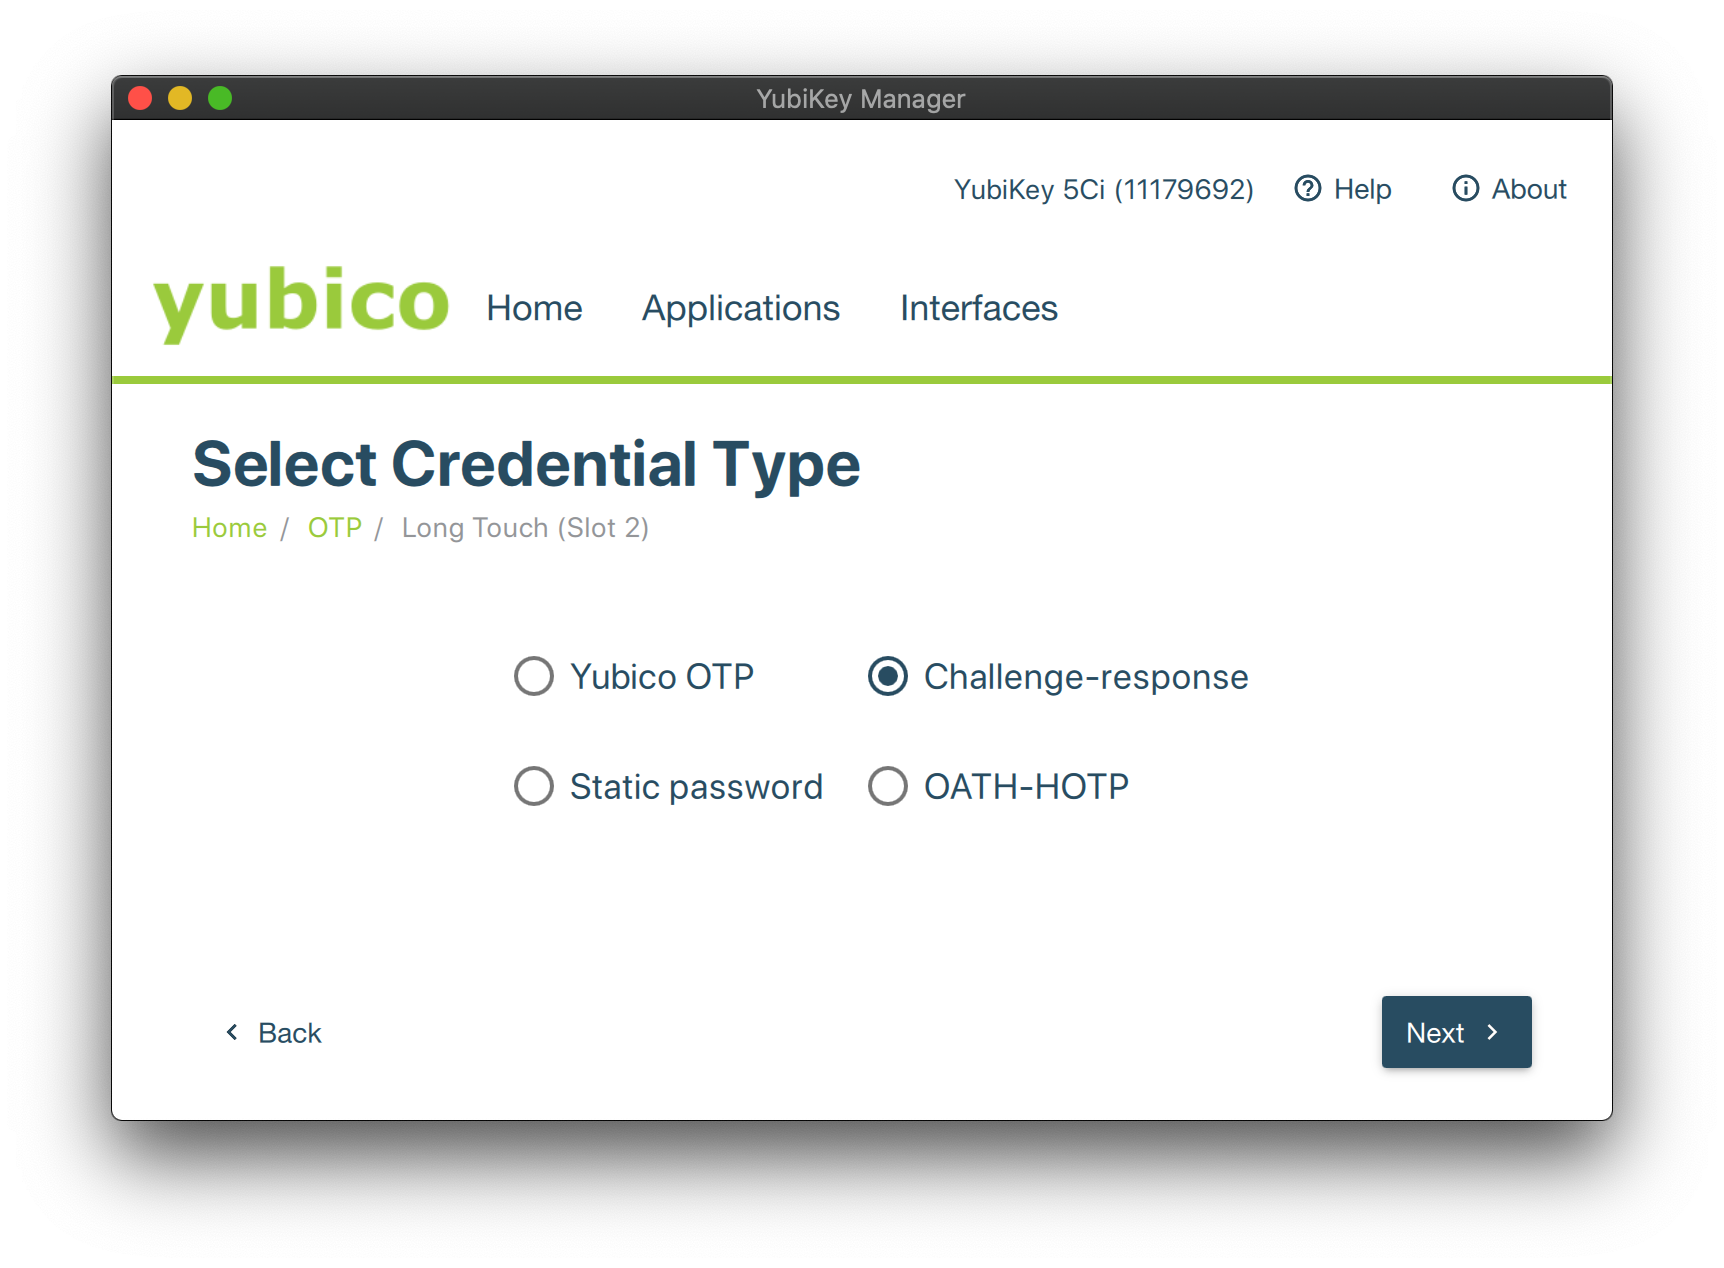 YubiKey Manager Credential Type